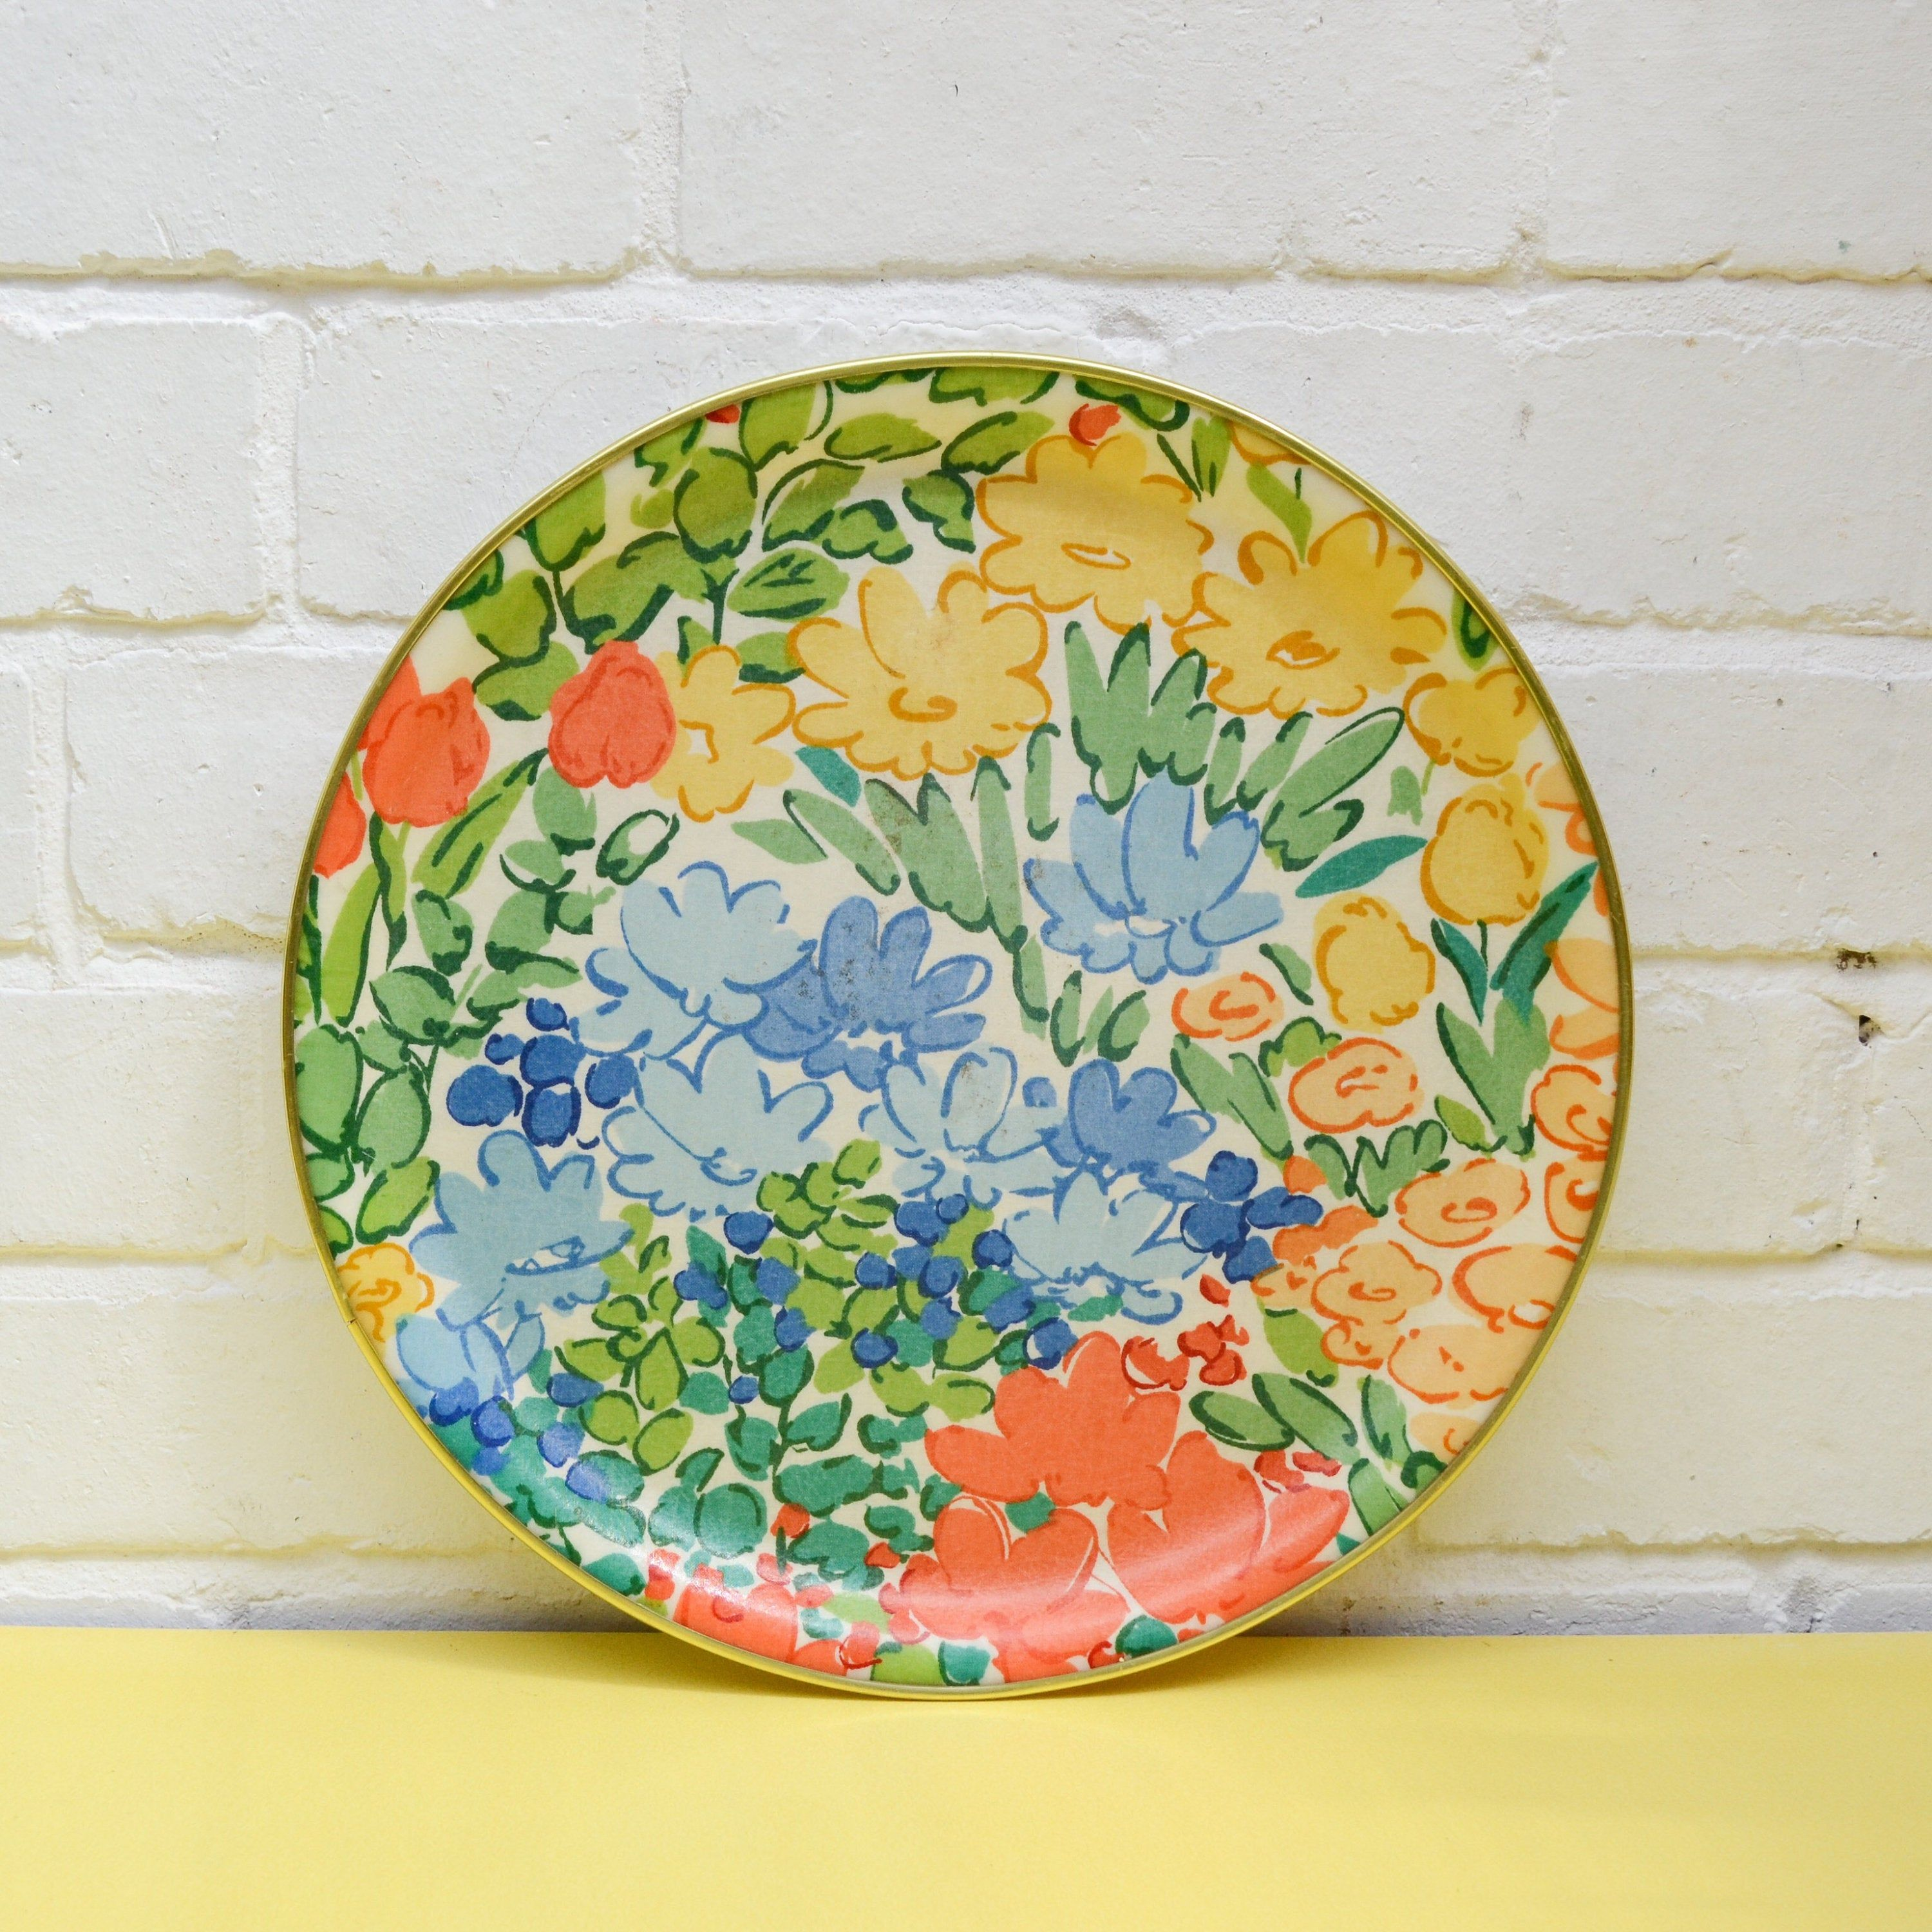 Vintage Fibreglass Tray, Round Floral Serving Tray in 2020